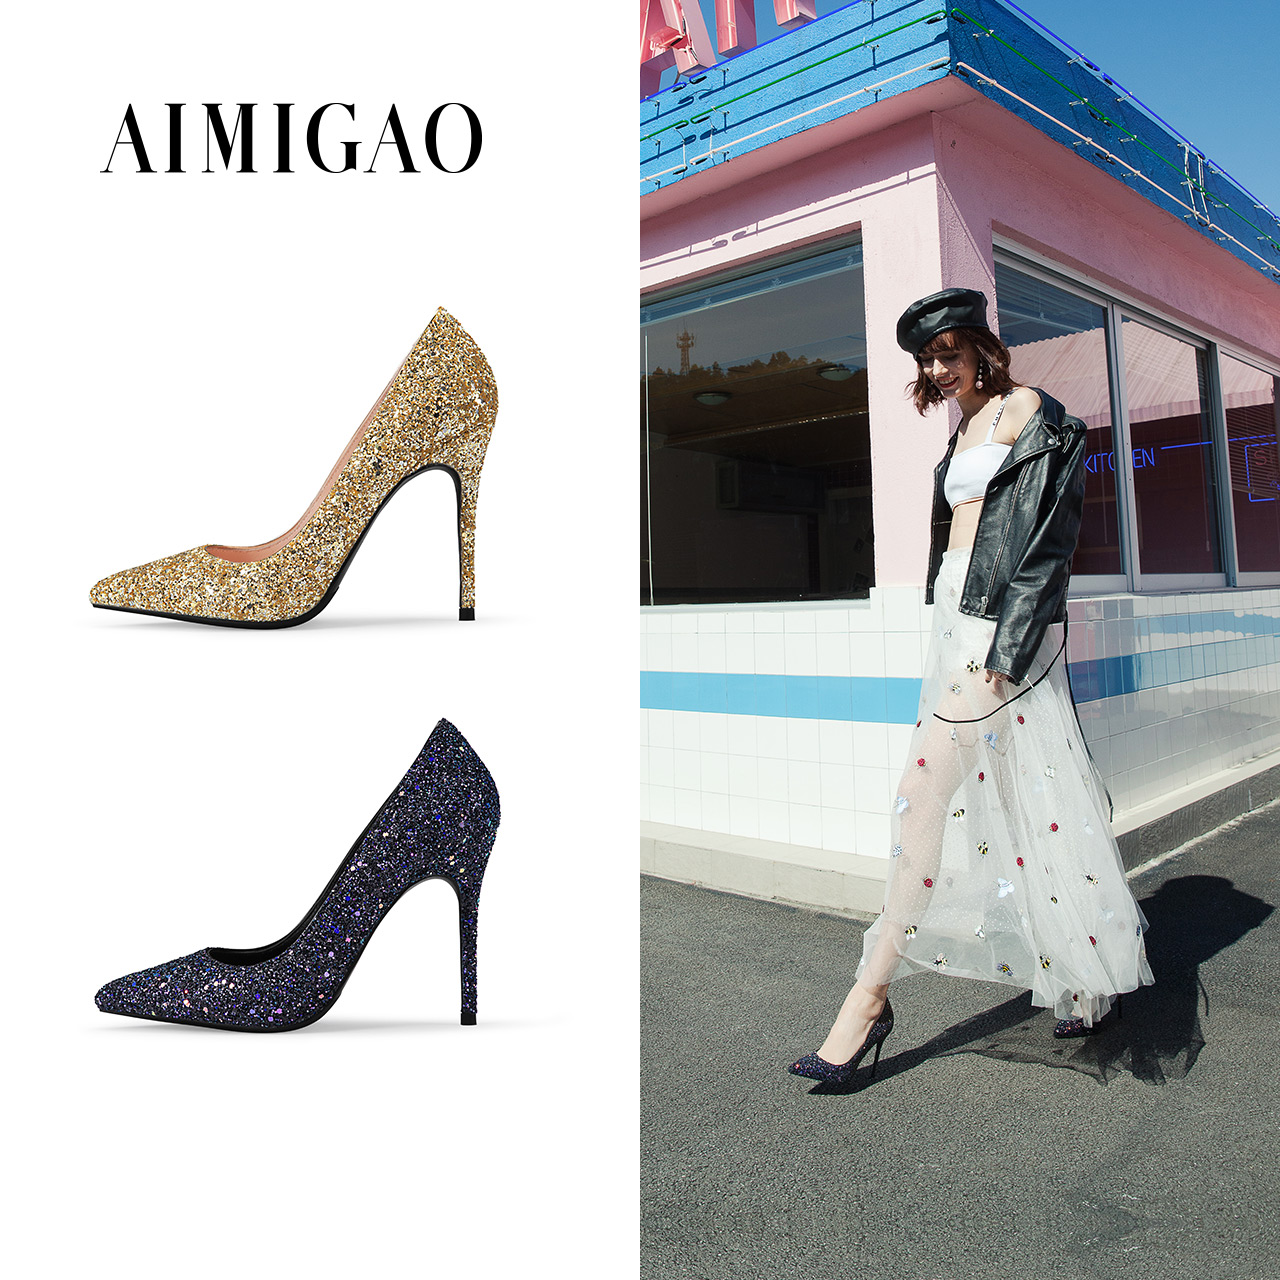 AIMIGAO Pointed Toe Women Glittering Pumps Shoes Glitter Sexy High Heels Bling Fashion Wedding Party Shoes Pumps 2018 Spring New 2017 hot sale fashion new women shoes pointed toe transparent pvc party shoes women casual high heels pumps shoes 596